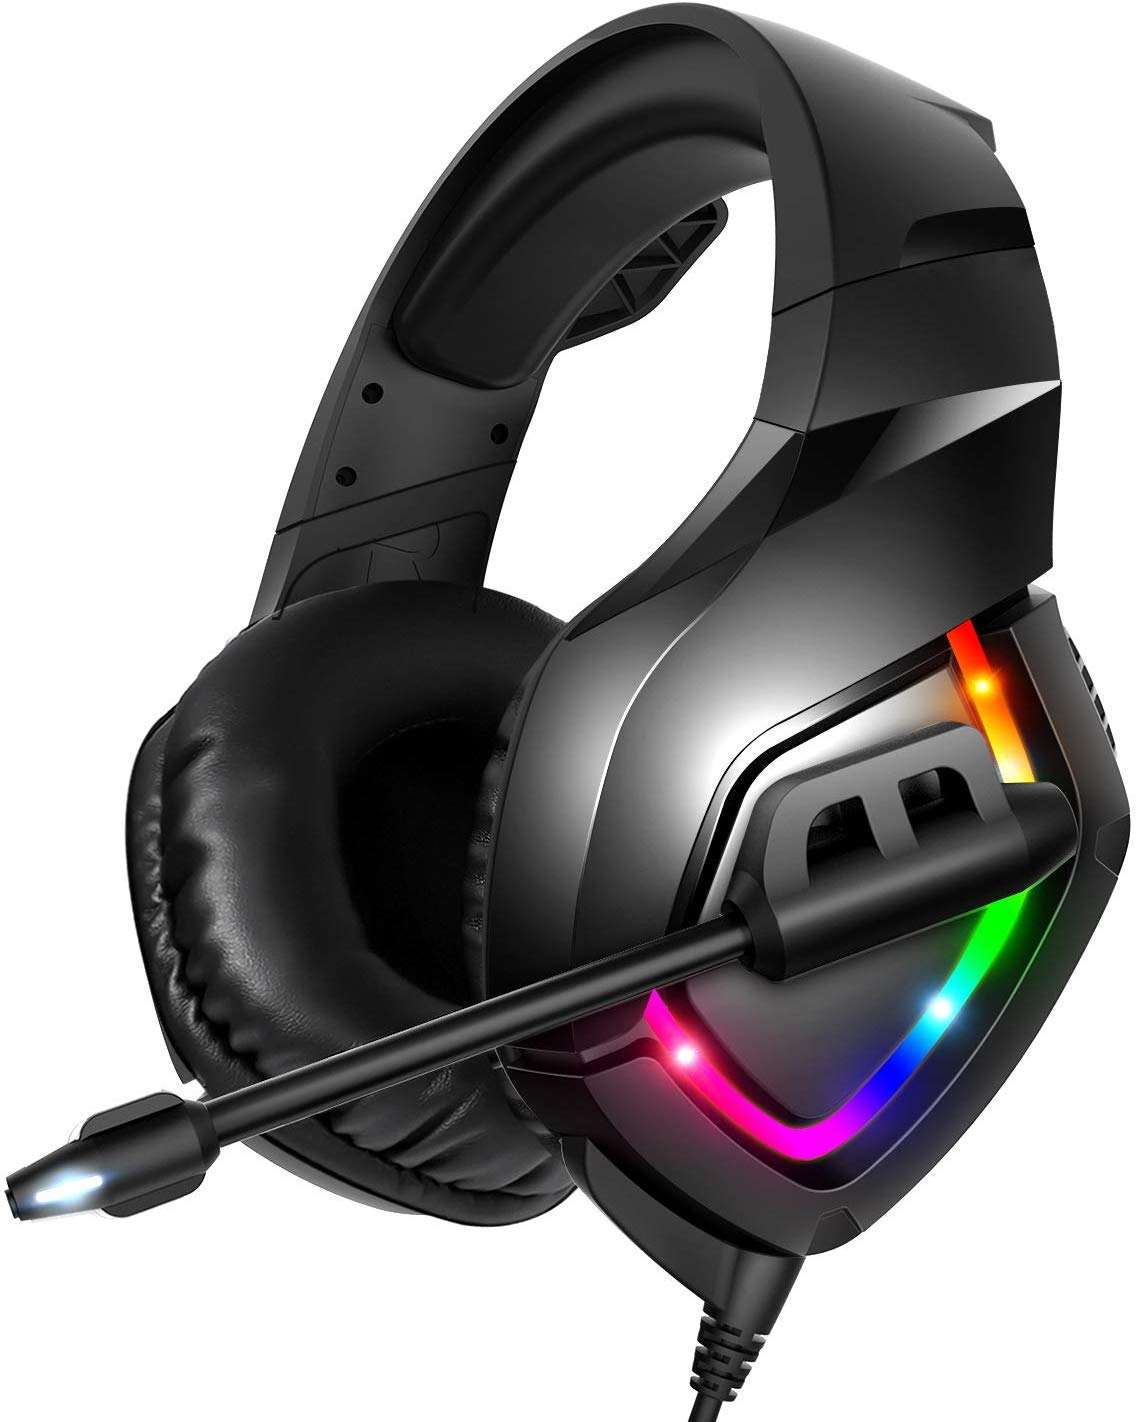 ONIKUMA RGB Gaming Headset Stereo Sound Voice quality PC gaming headphone with 3.5mm Jack